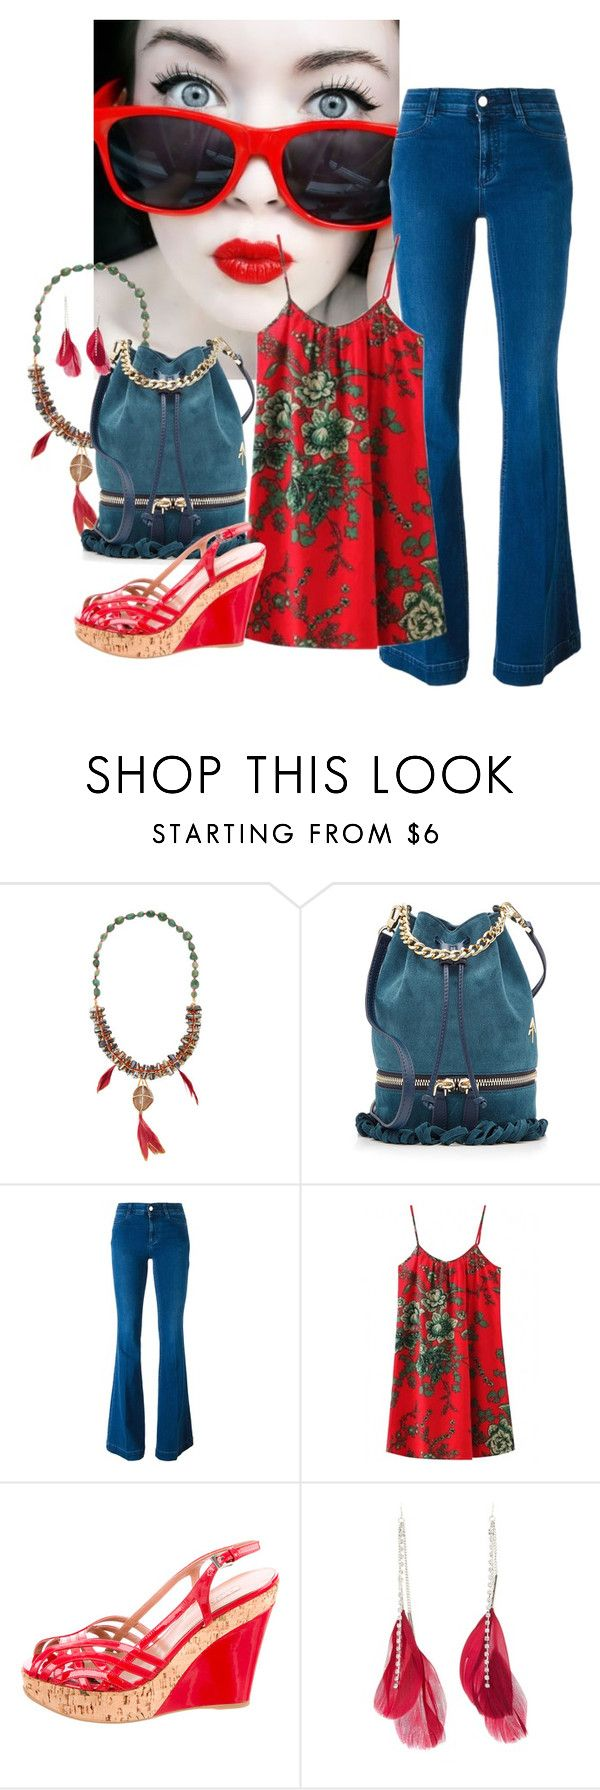 """""""Red For You"""" by joybug9 ❤ liked on Polyvore featuring SkinCare, Deepa Gurnani, MANU Atelier, STELLA McCARTNEY, Alaïa and Charlotte Russe"""